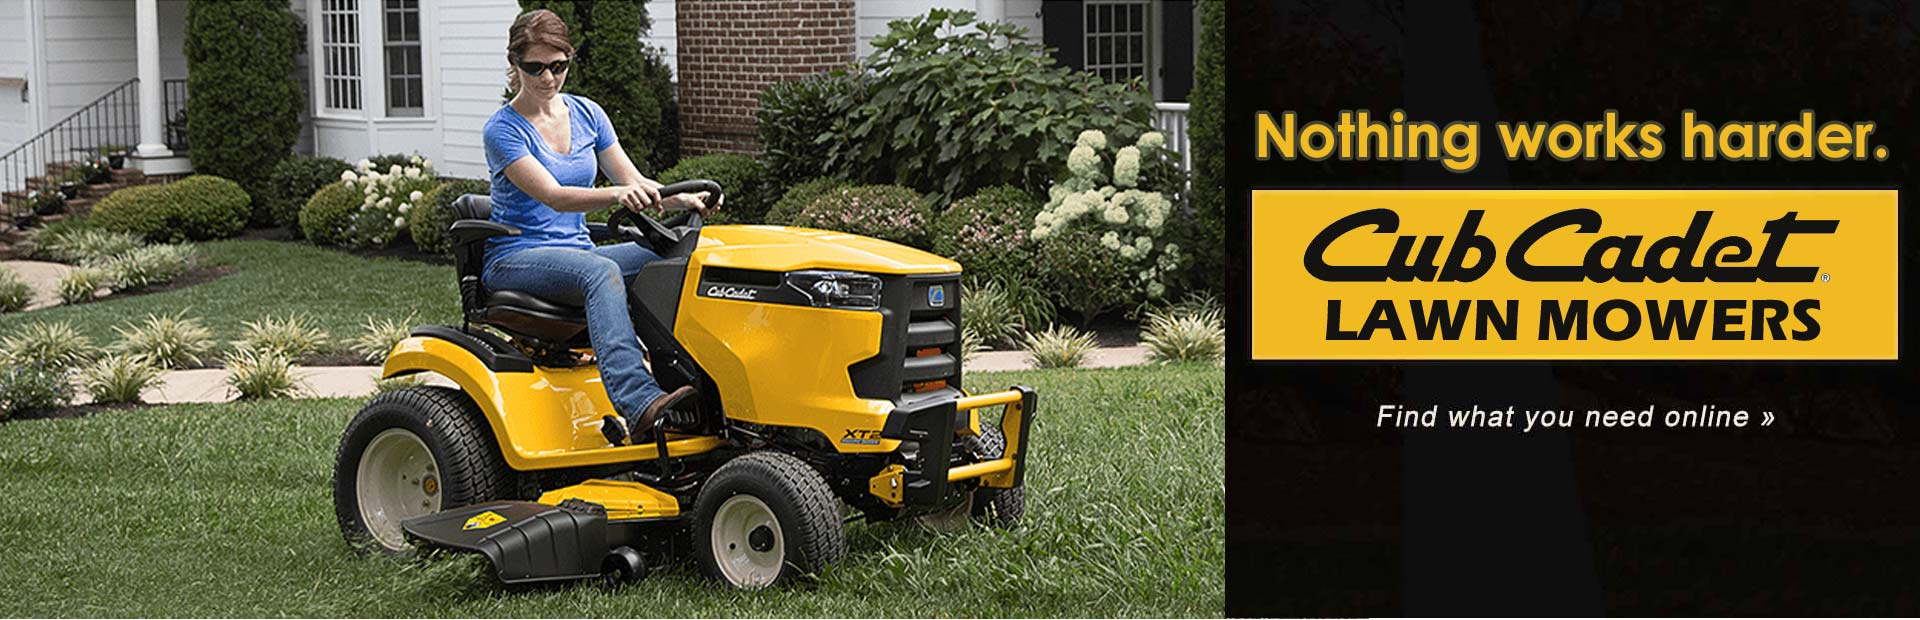 Cub Cadet Lawn Mowers: Click here to view the models.